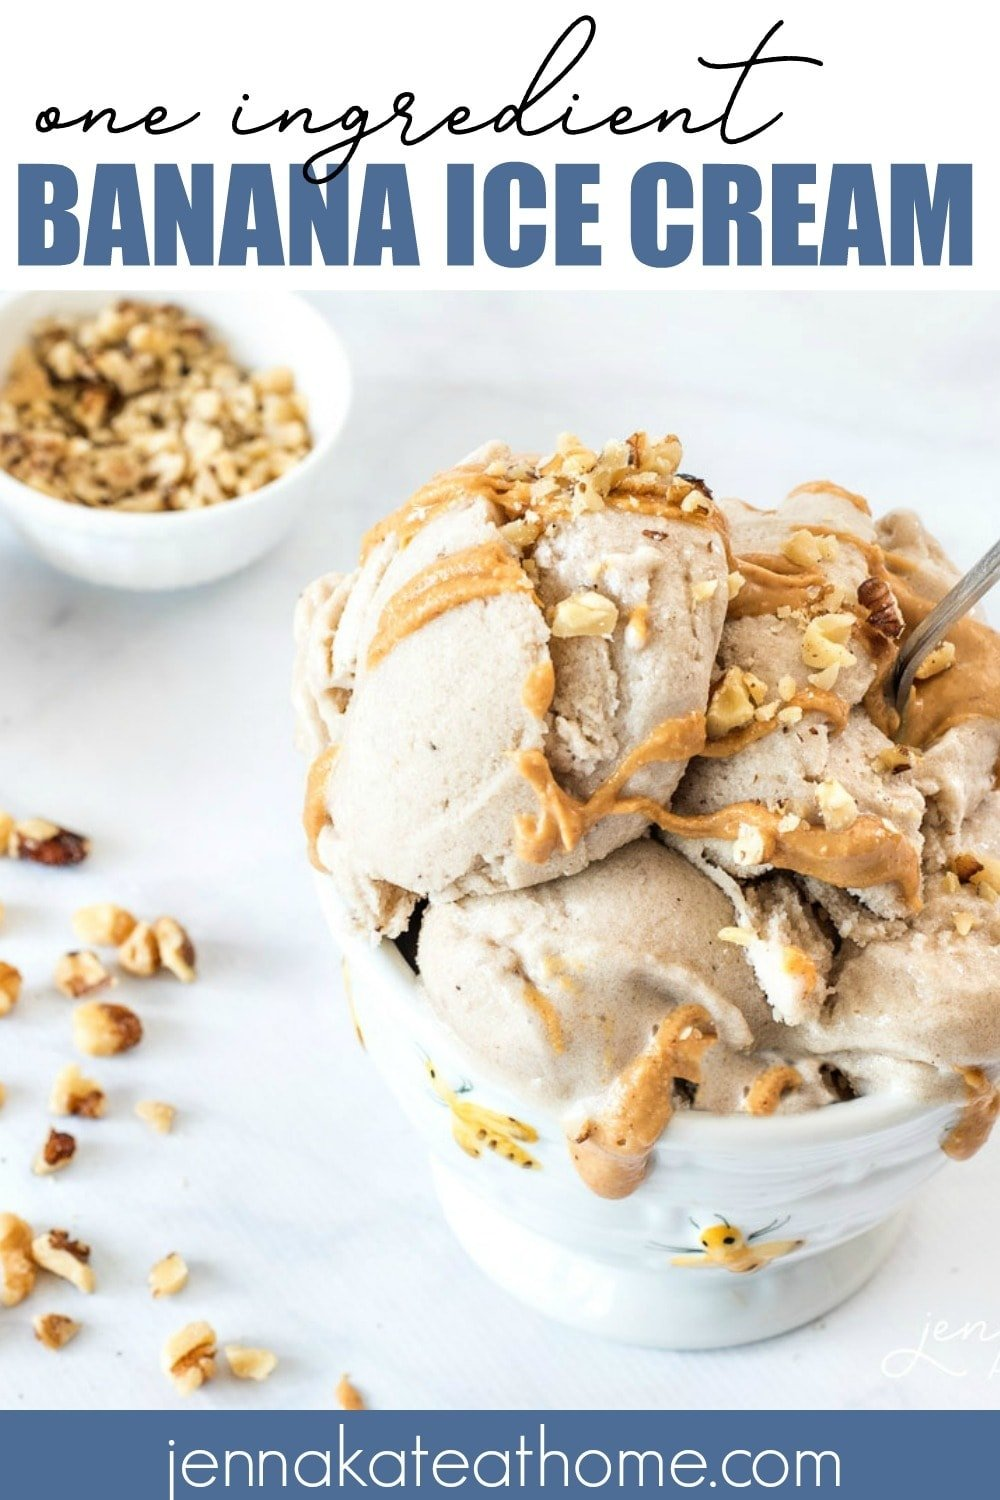 "This healthy banana ""ice cream"" is made with only 1 ingredient - bananas! But adding chocolate chips and peanut butter turns it into a decadent treat that you don't need to feel guilty about!"